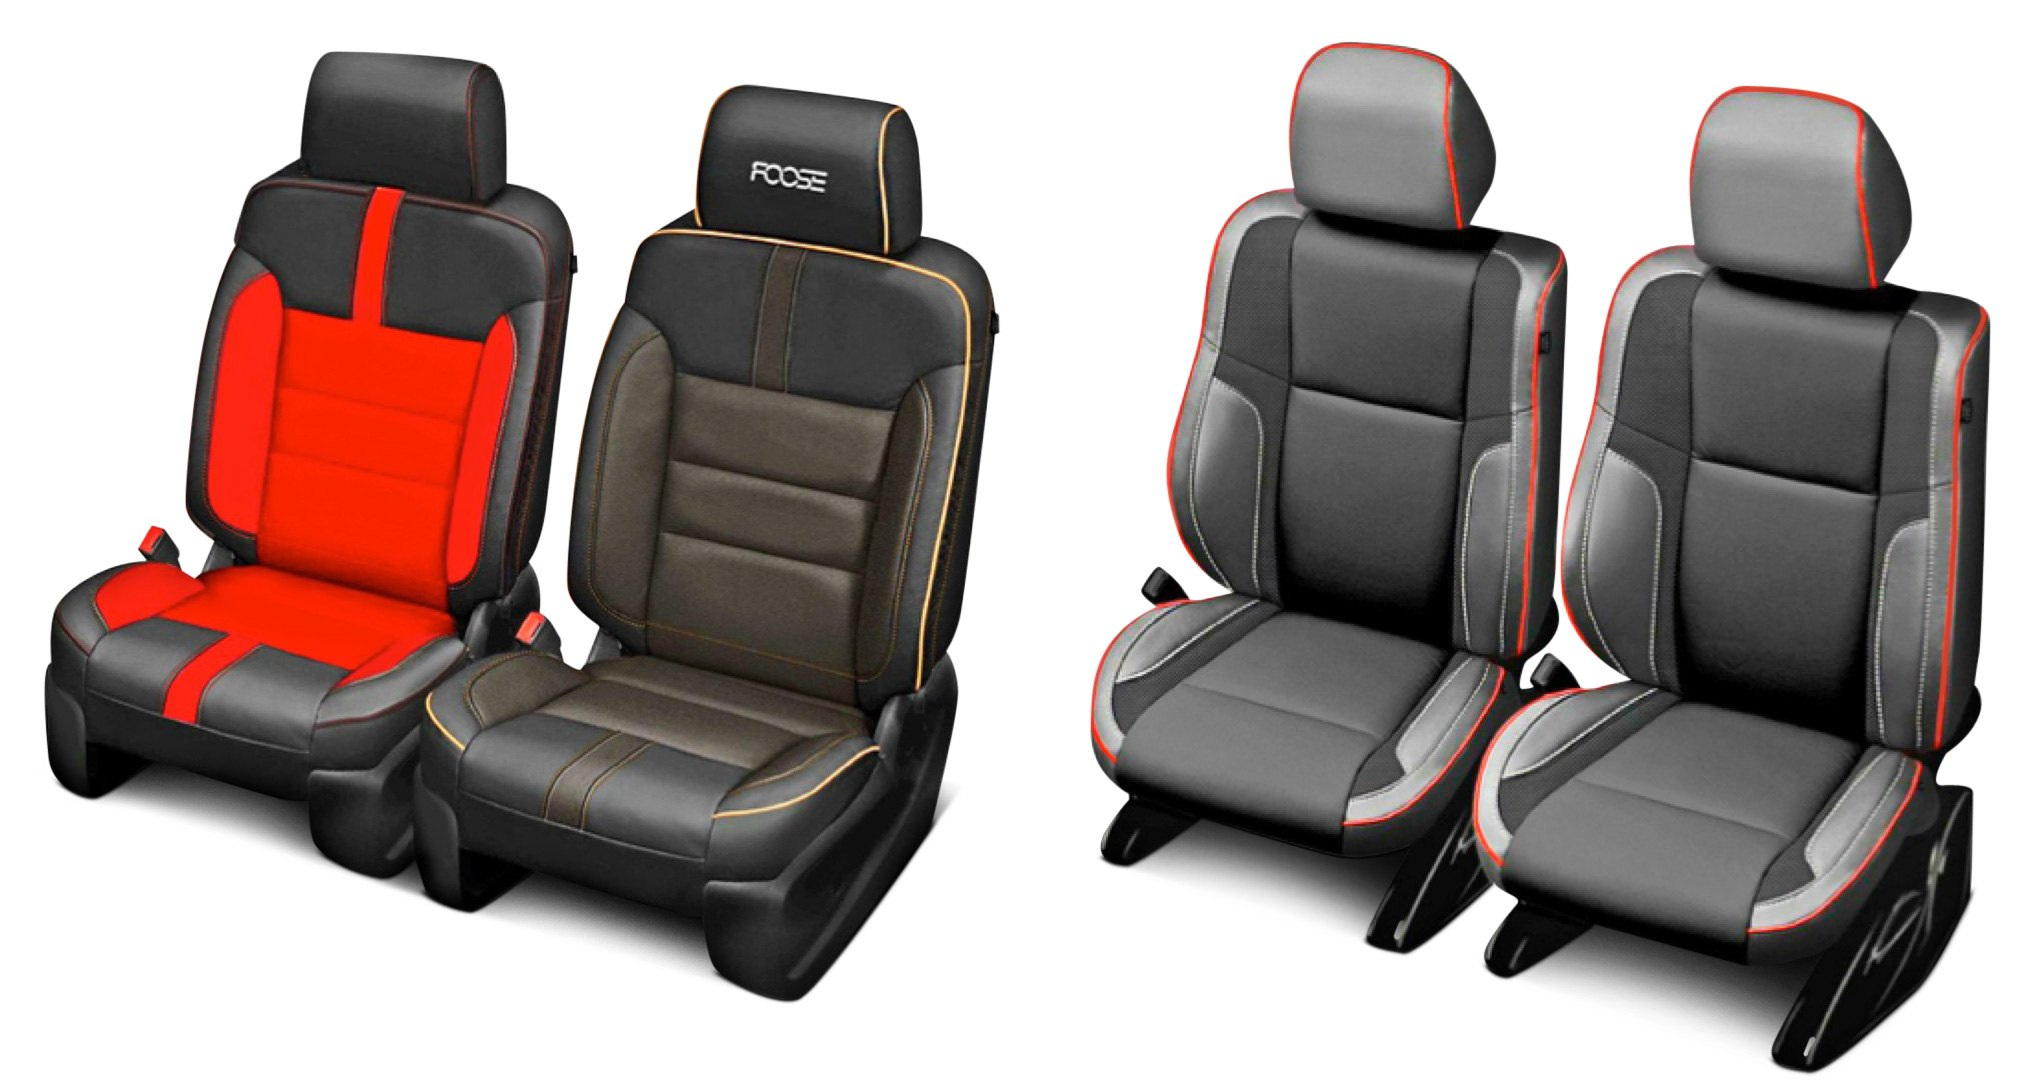 Which Seat Cover Fabric Works Best For My Needs